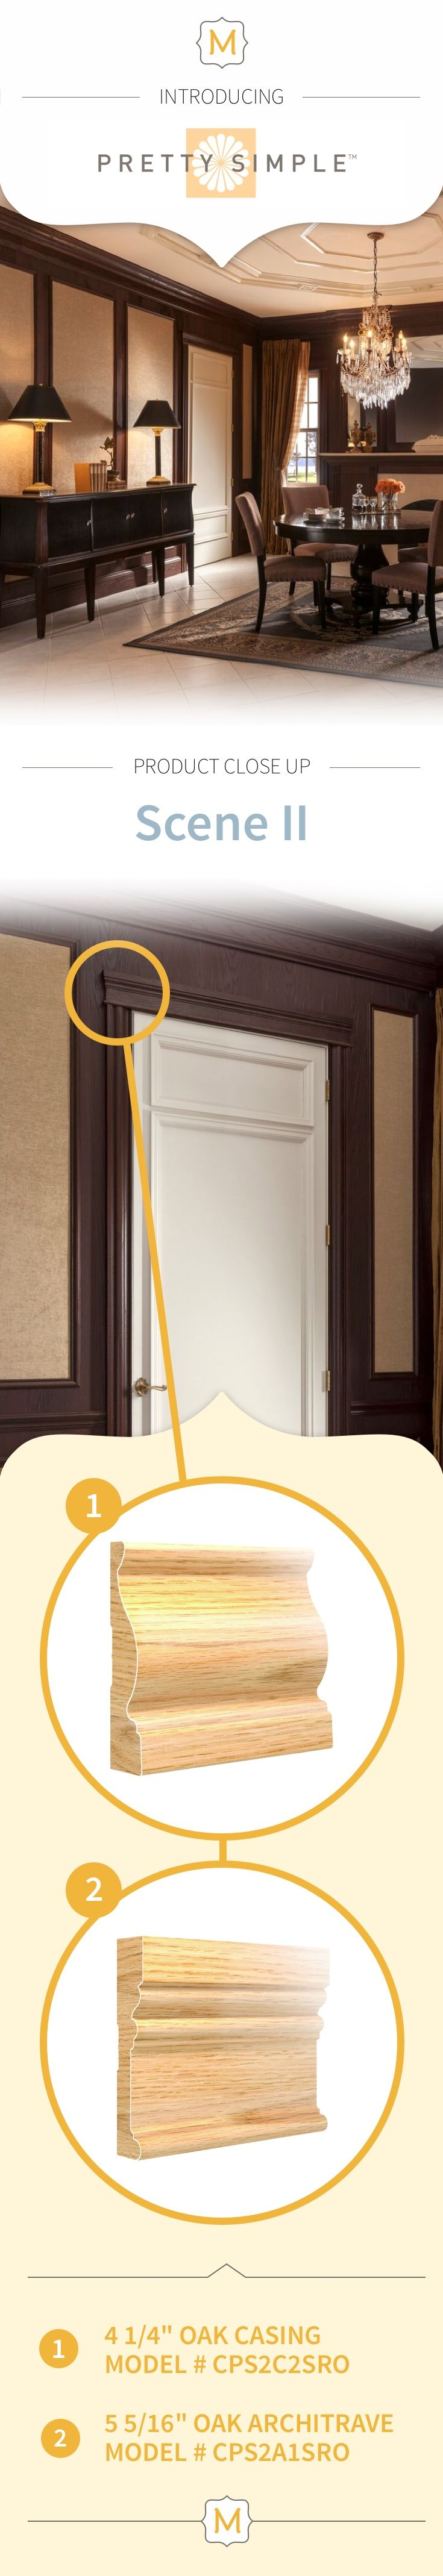 Even standard door frames get an upgrade with Metrie's Pretty Simple Collection trim elements.